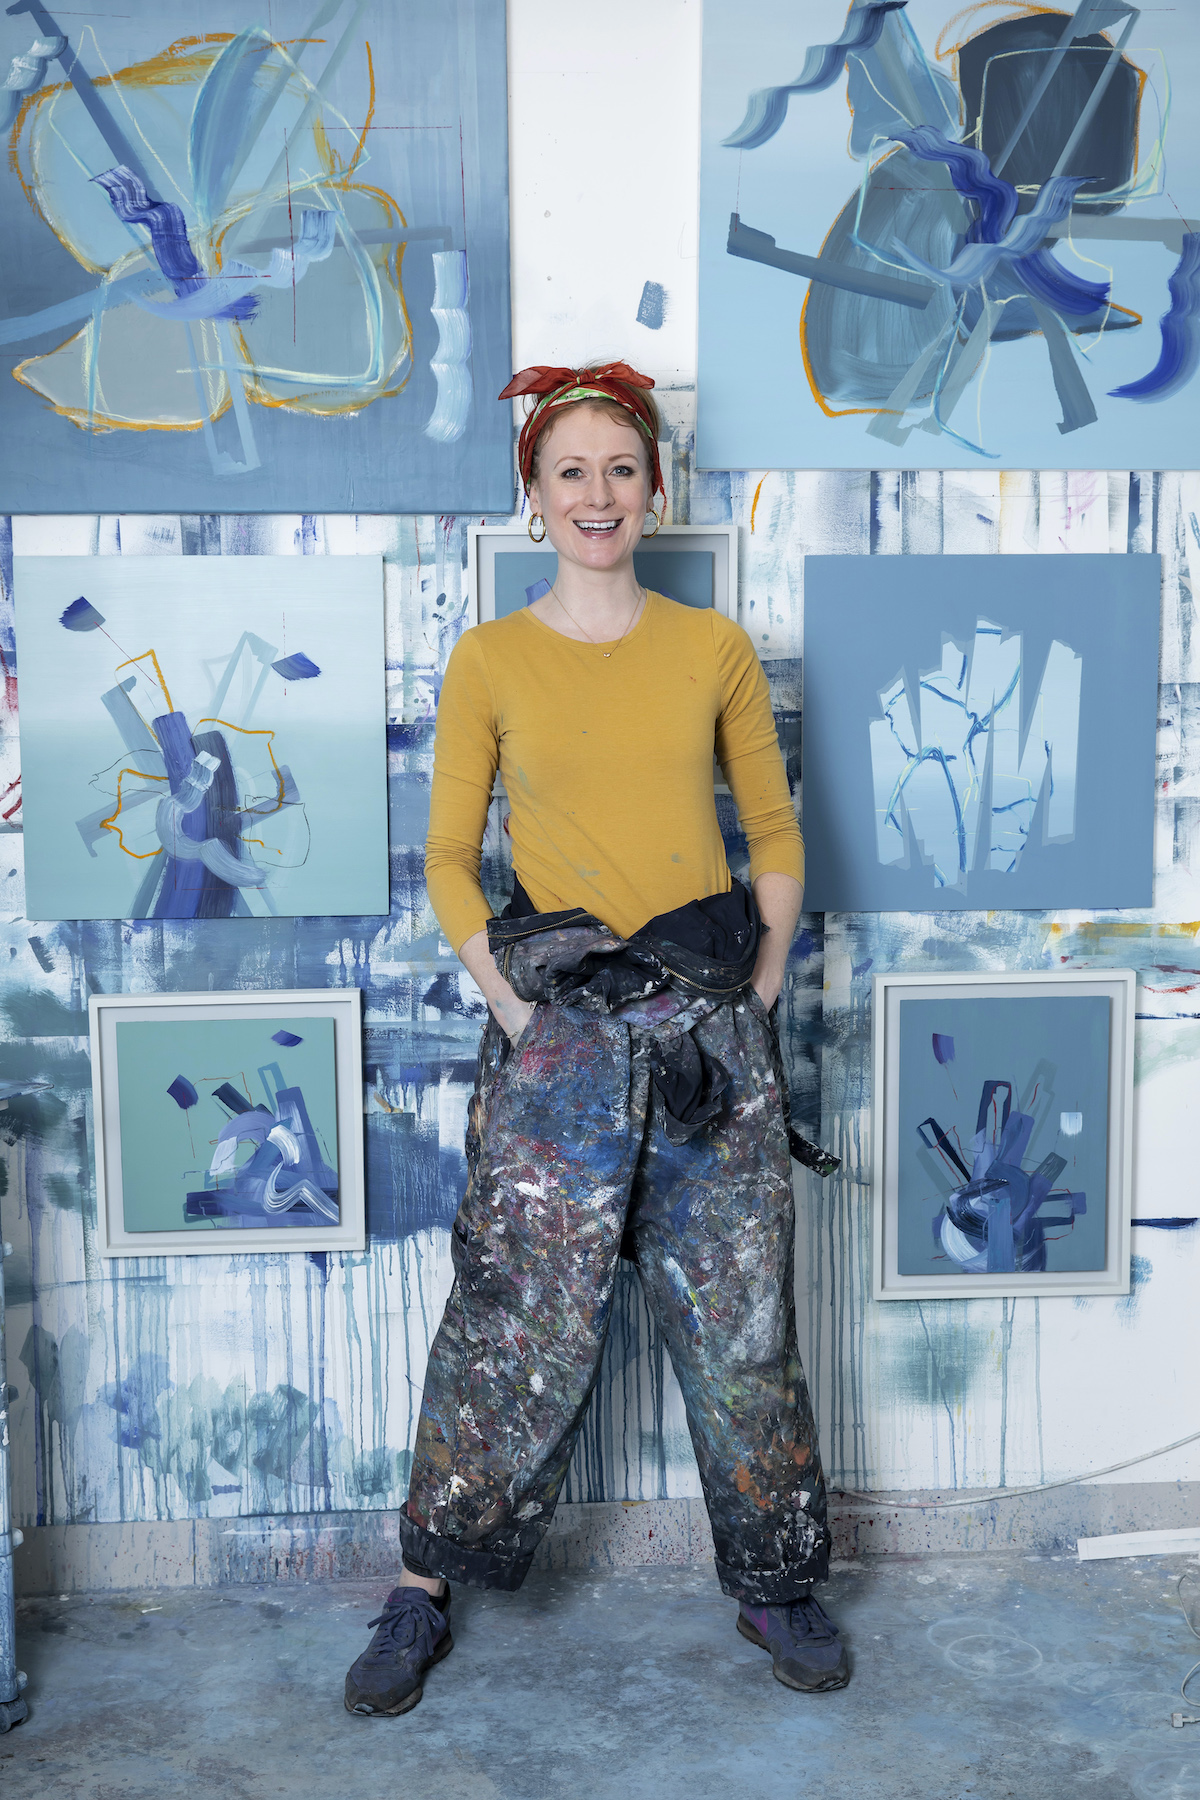 abstract art artist aisling drennan in her studio in london with blue abstract paintings and green abstract paintings